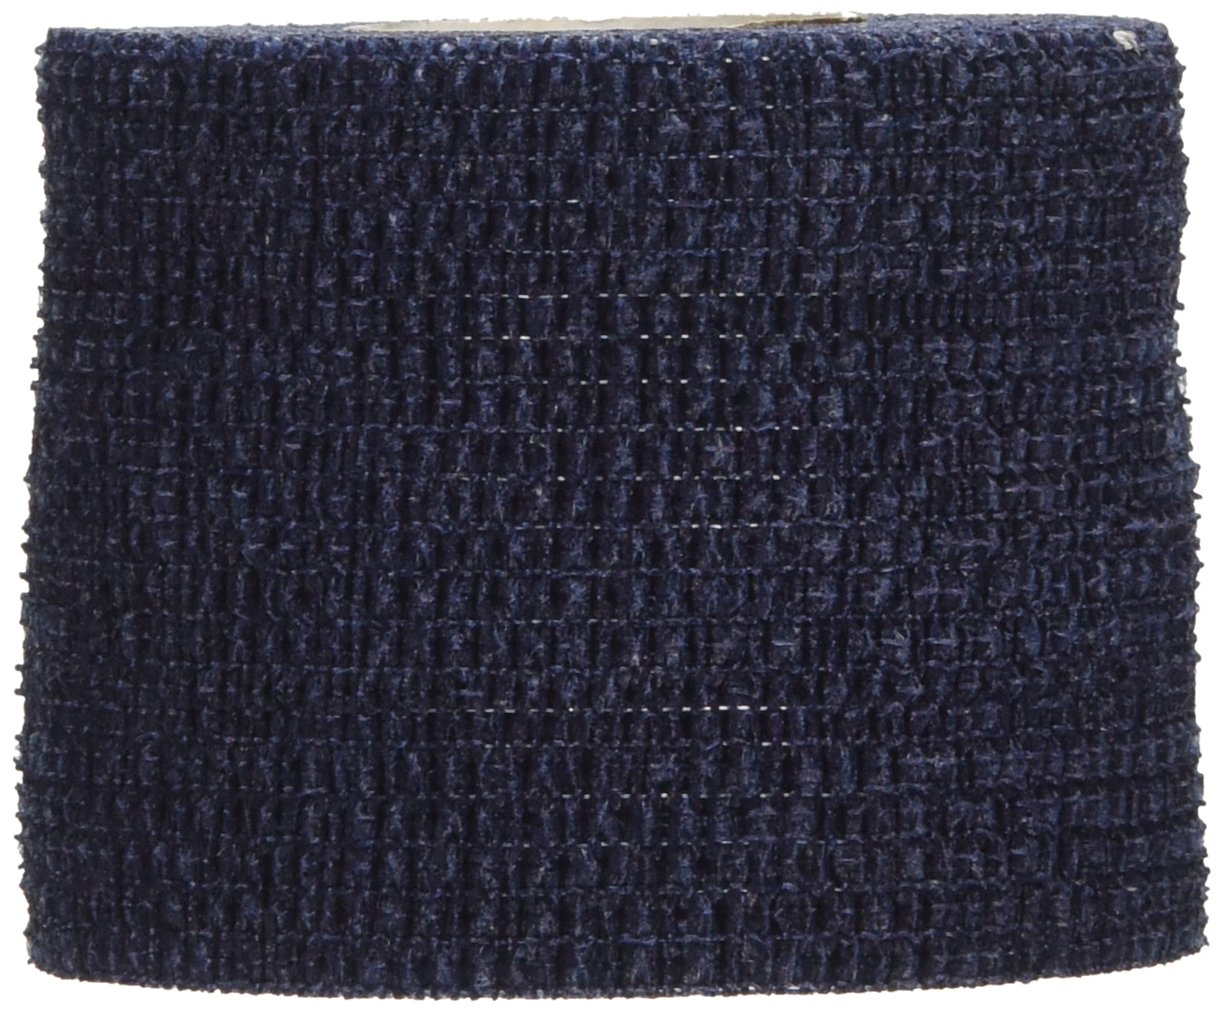 Powerflex Max New product! New type 54% OFF 2 Stretch Athletic Tape Navy - 6 Blue Rolls